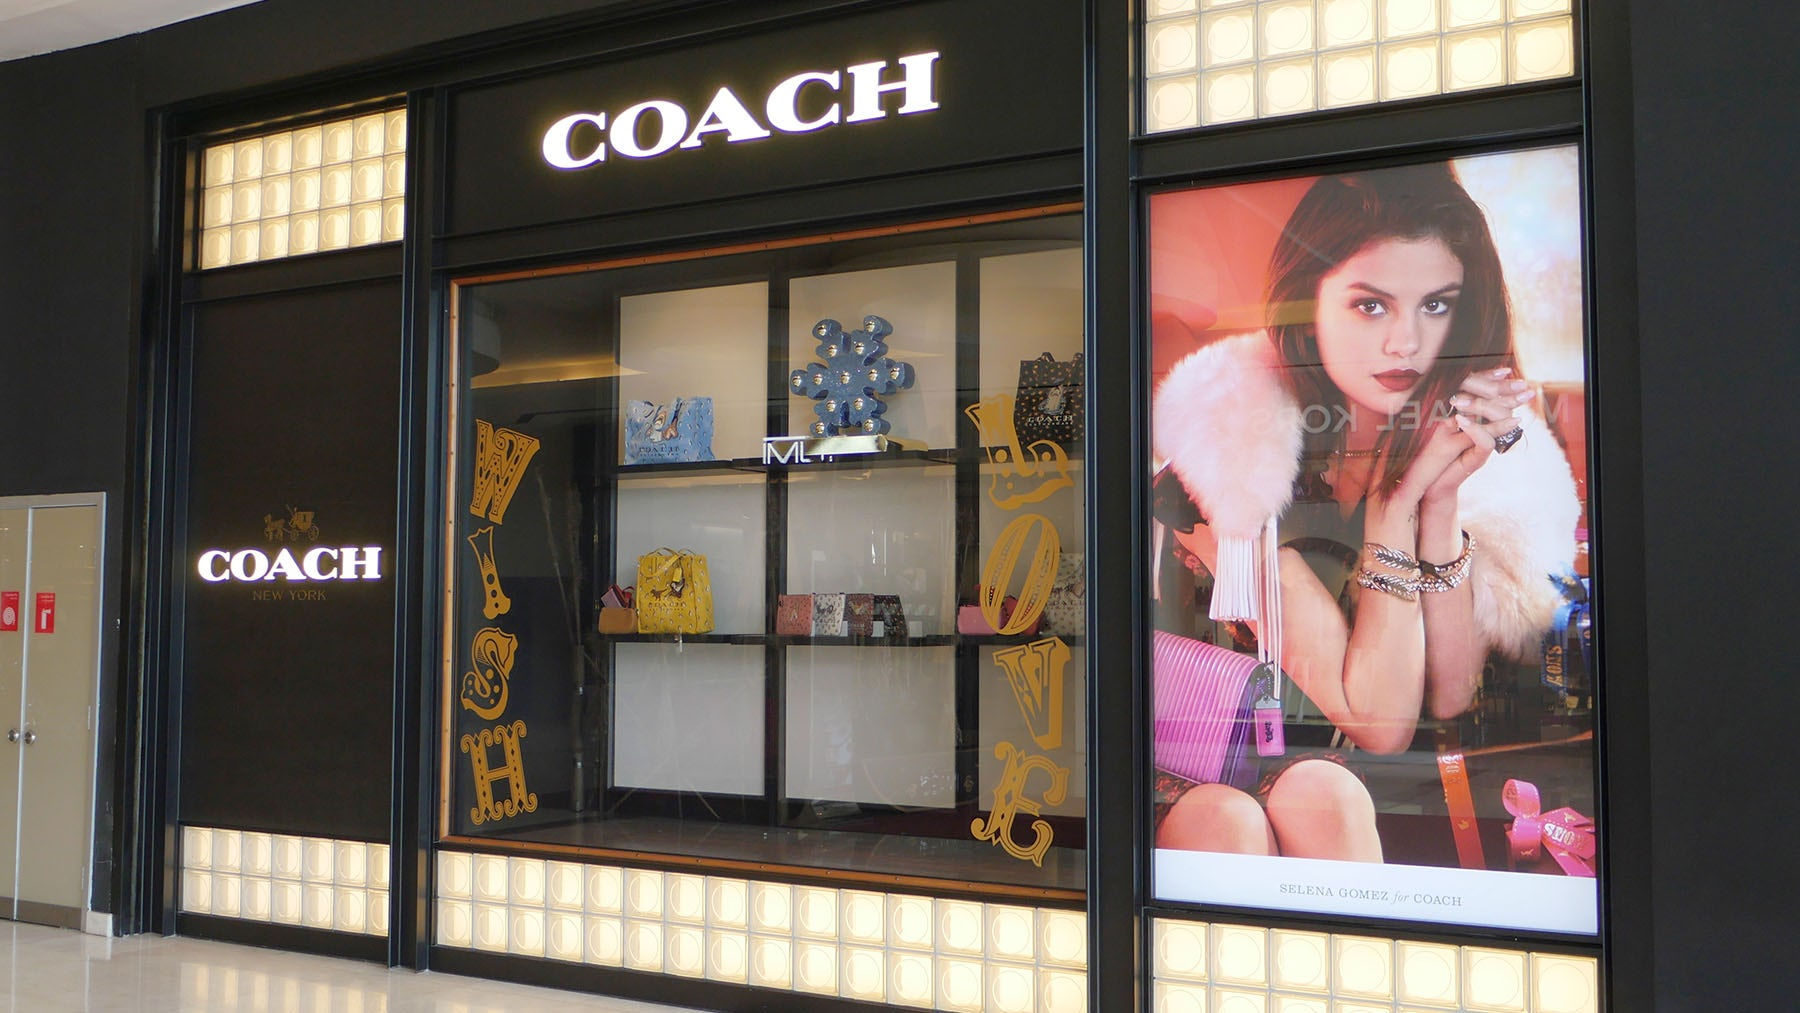 Coach store | Source: Shutterstock